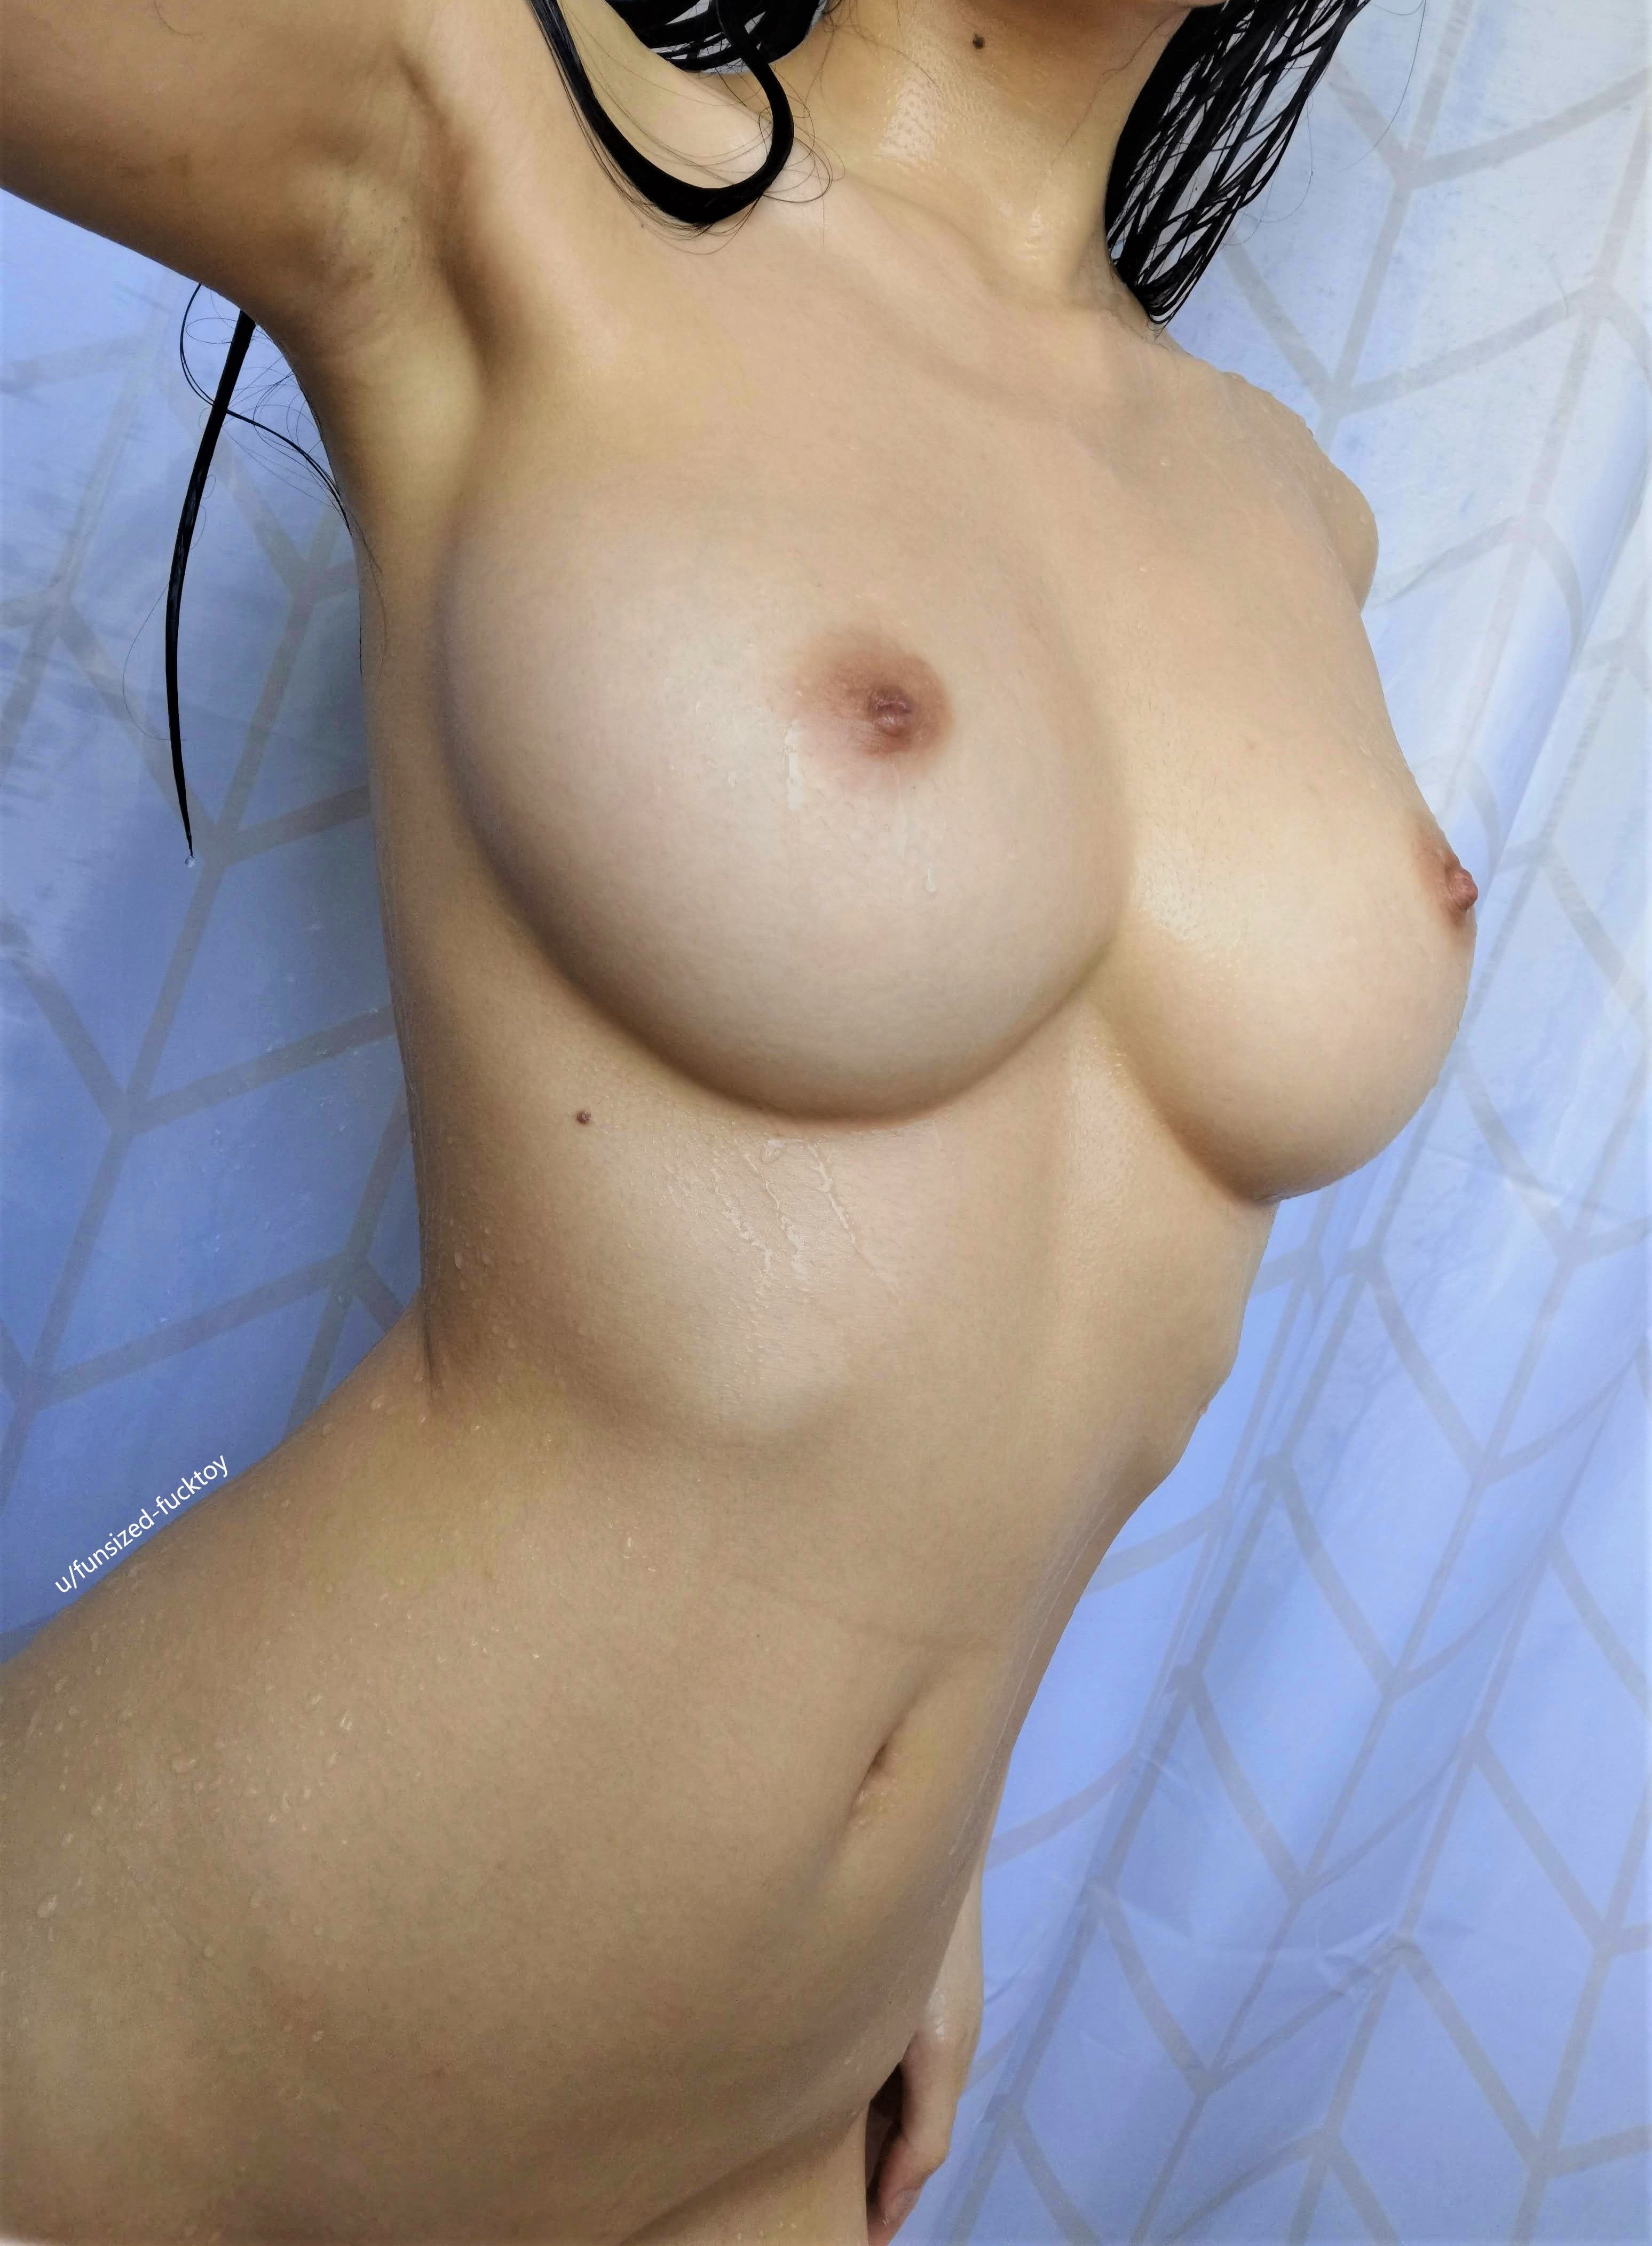 One of our naked asian pics called Get wet with me